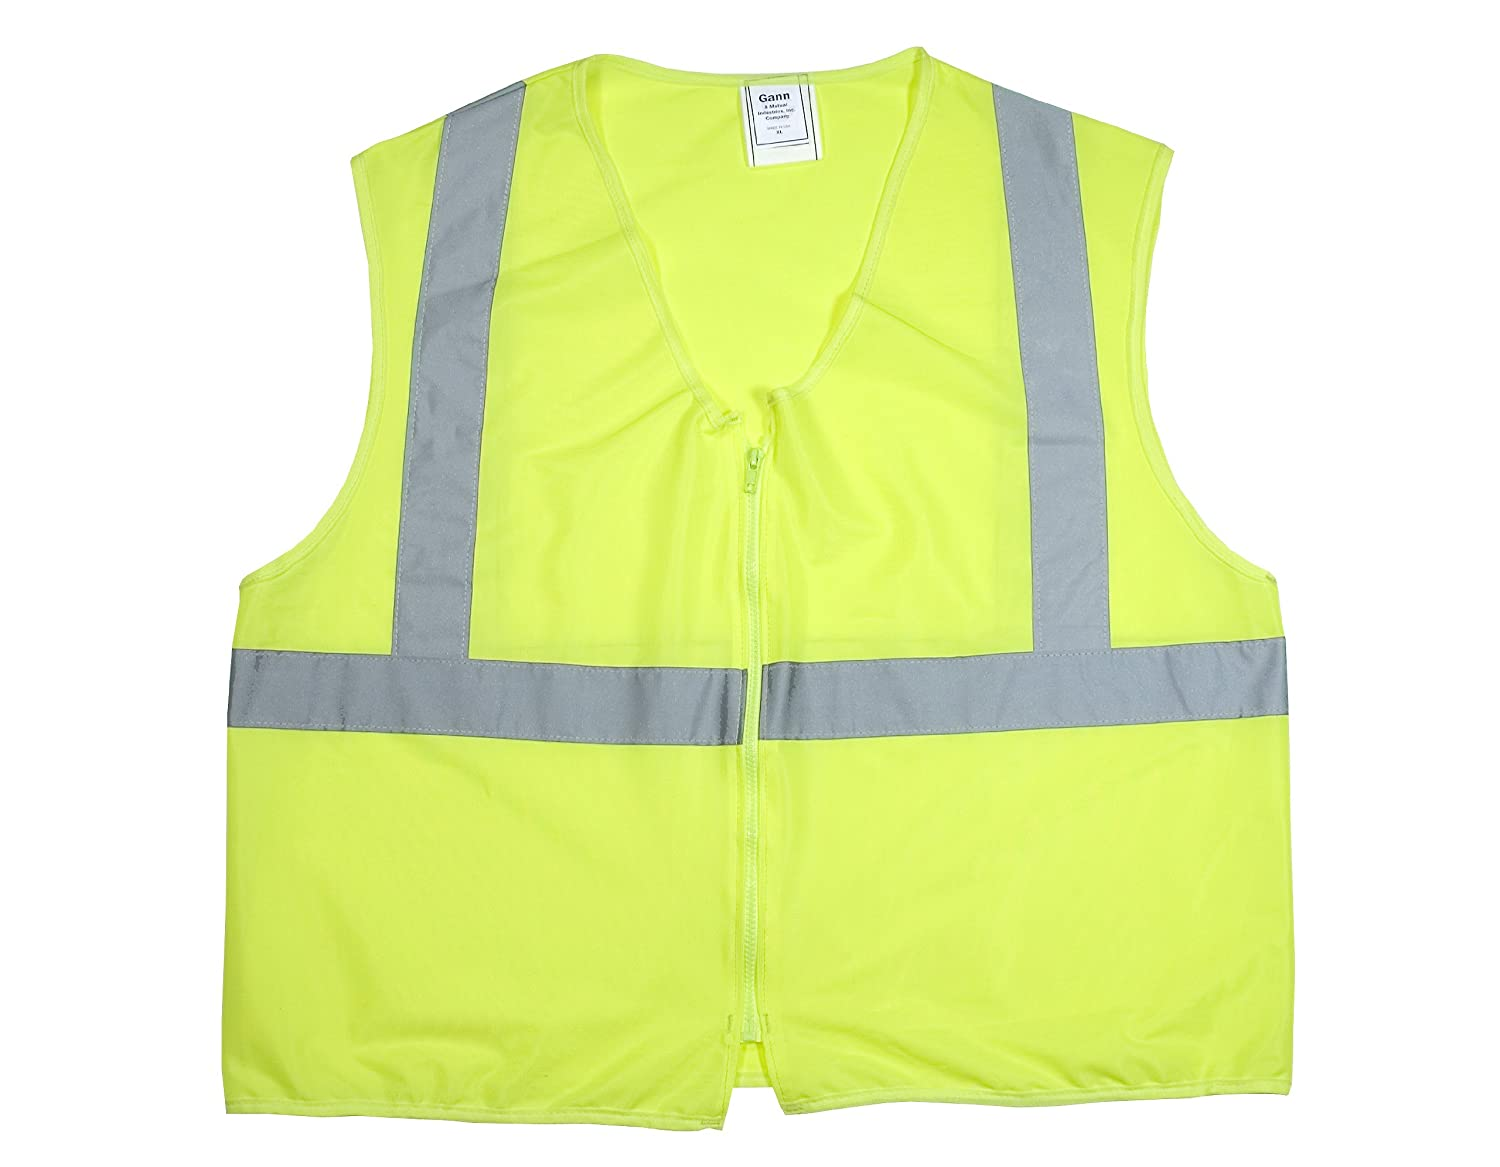 cee8d9959141 Mutual 84900 High Visibility Polyester ANSI Class 2 Non Durable Flame  Retardant Solid Safety Vest with 2